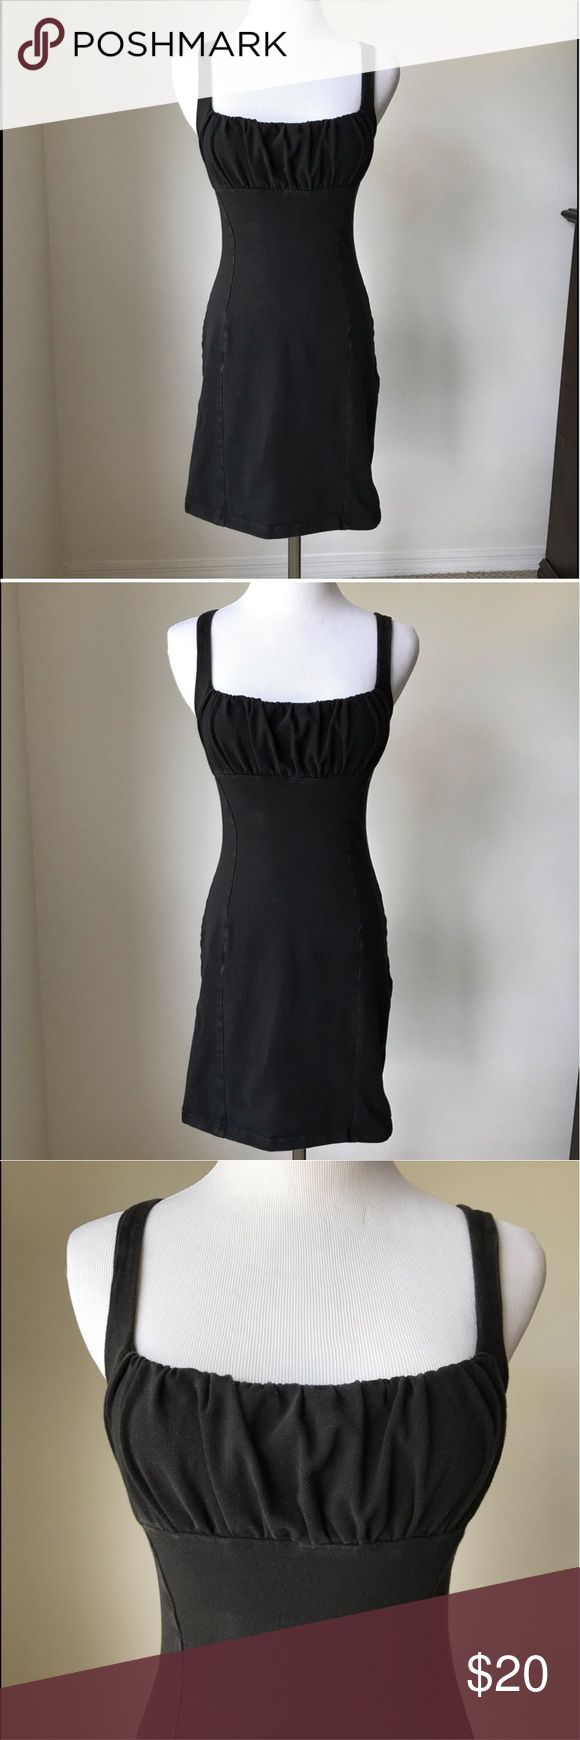 Victoria's Secret Black Beach Cover Up VS beach cover up with built in bra. Form fitting with lots of stretch and ruched area over bust. I've worn it a bit both to the beach and as a going out dress very comfortable. Has no rips, tears or stains. Does have a little fading due to sun. Has been cleaned and ready for wear.  Comes from a pet free and smoke few home. Victoria's Secret Swim Coverups